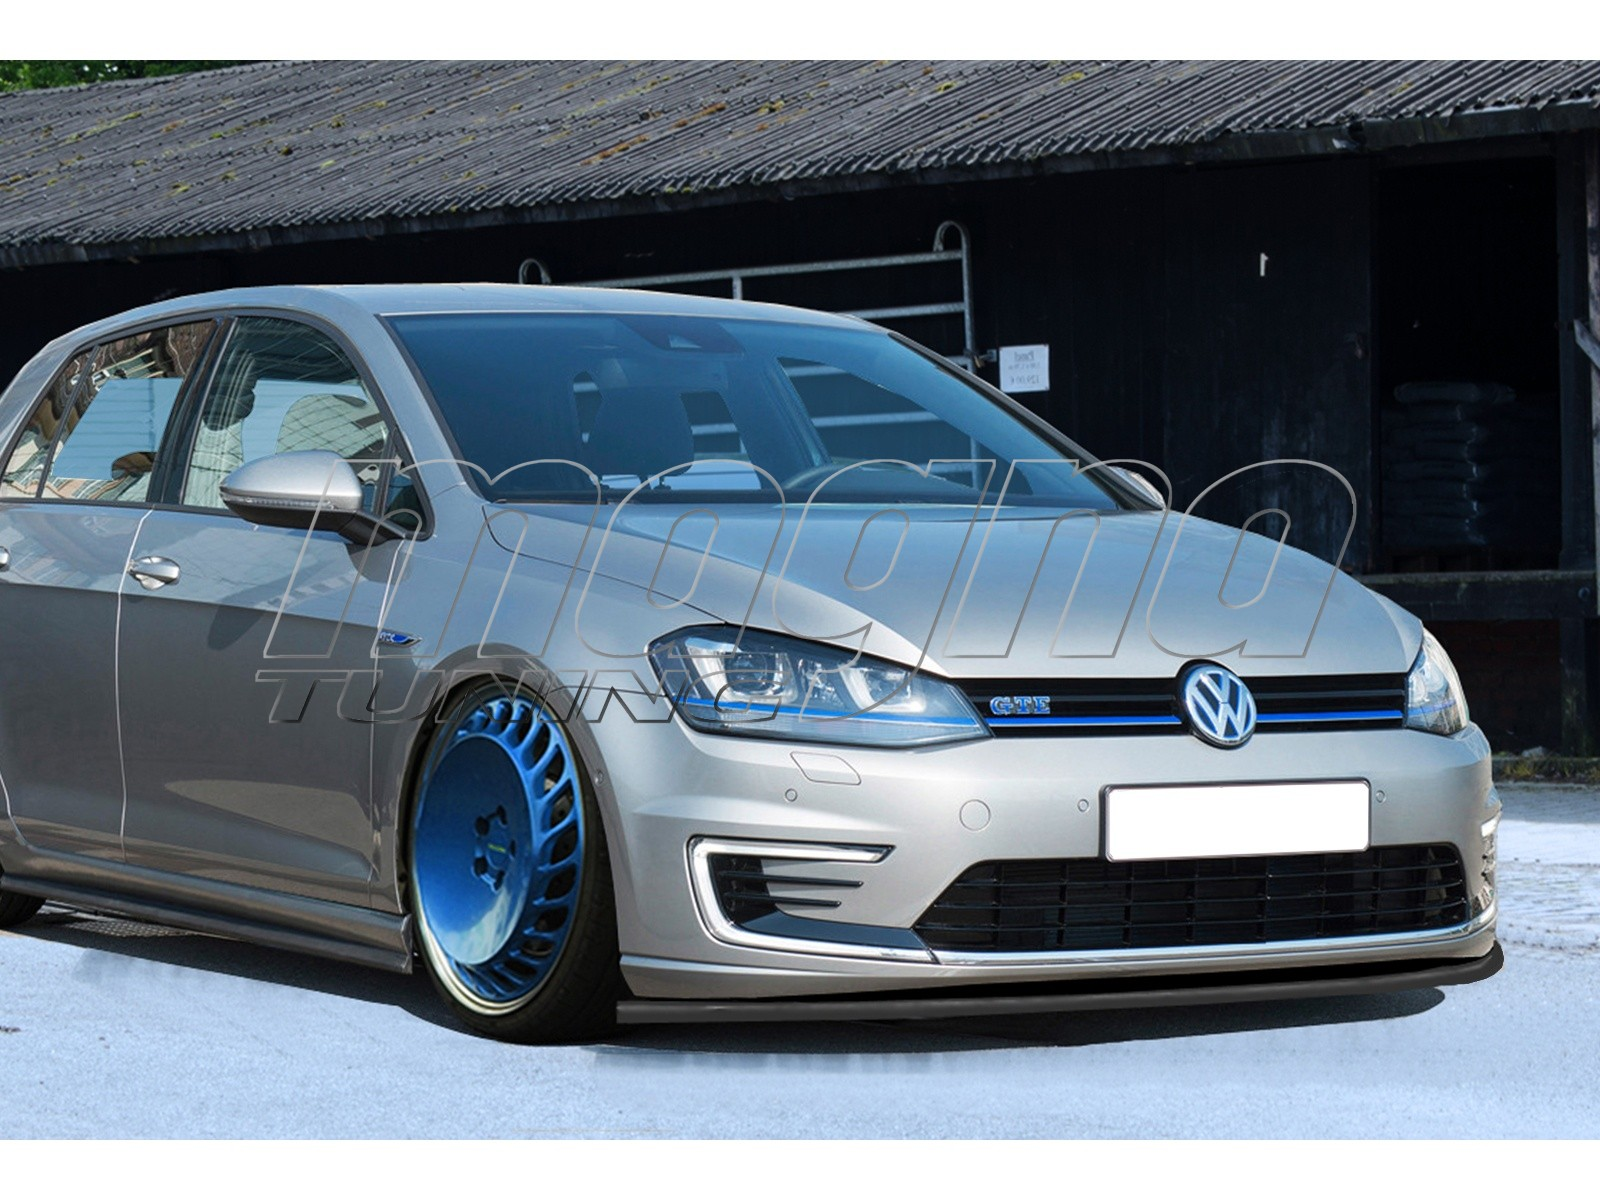 vw golf 7 gte i line front bumper extension. Black Bedroom Furniture Sets. Home Design Ideas